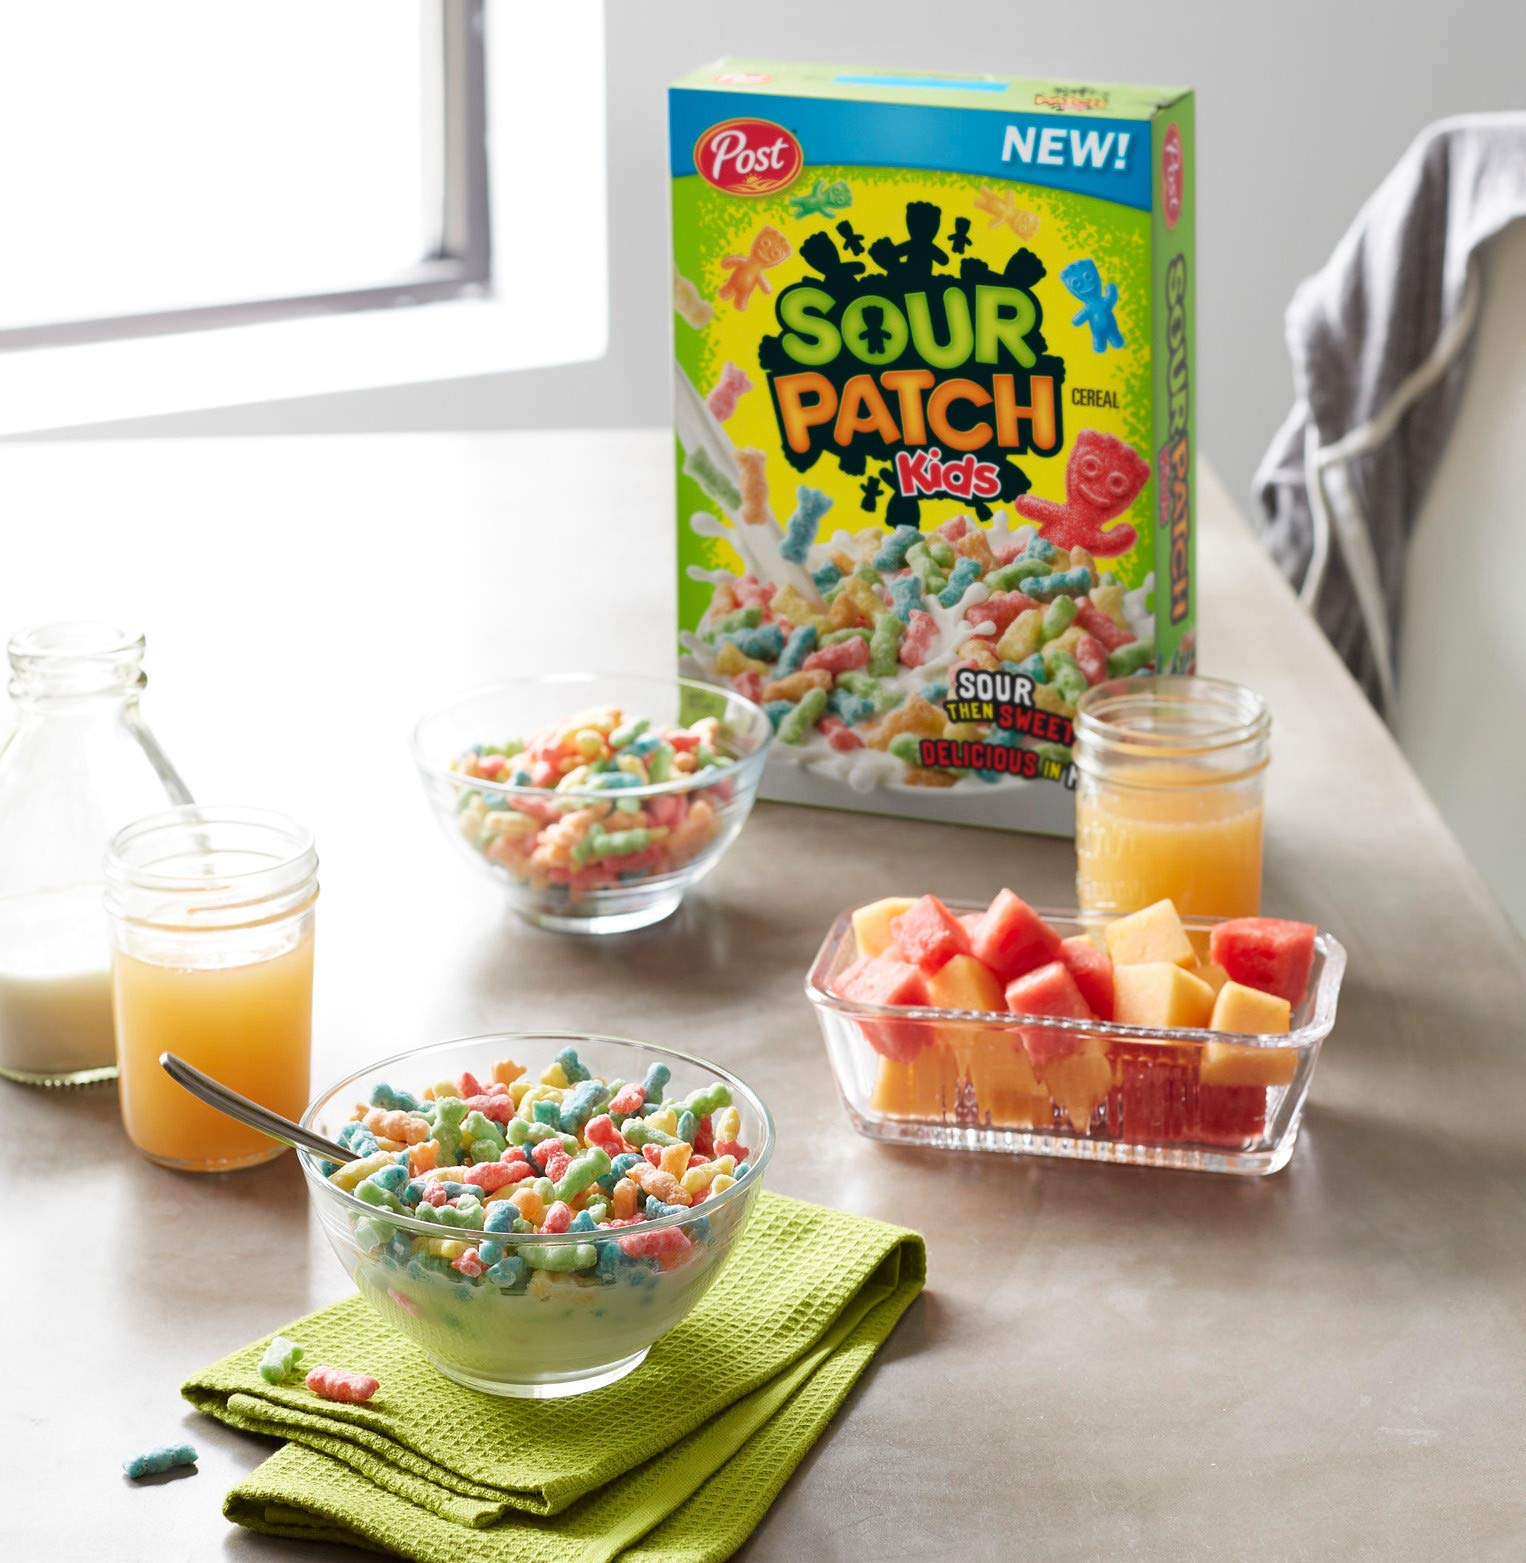 POST SOUR PATCH KIDS CEREAL (311G)-9478